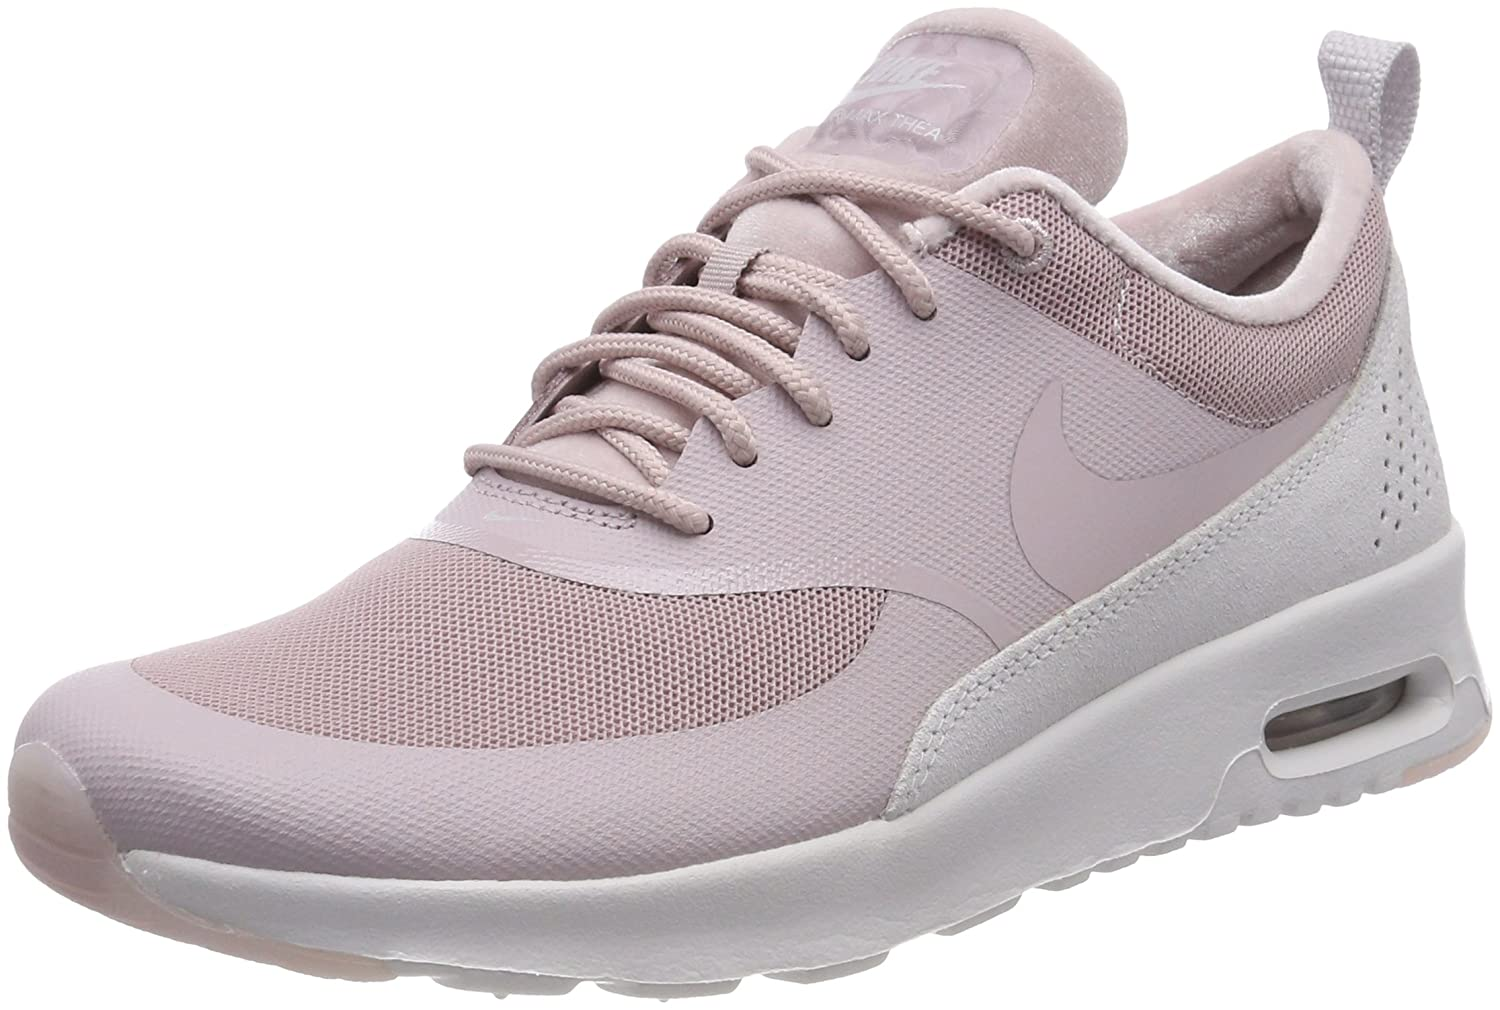 huge selection of d5f63 1cc77 Nike Women s WMNS Air Max Thea Lx Gymnastics Shoes  Amazon.co.uk  Shoes    Bags